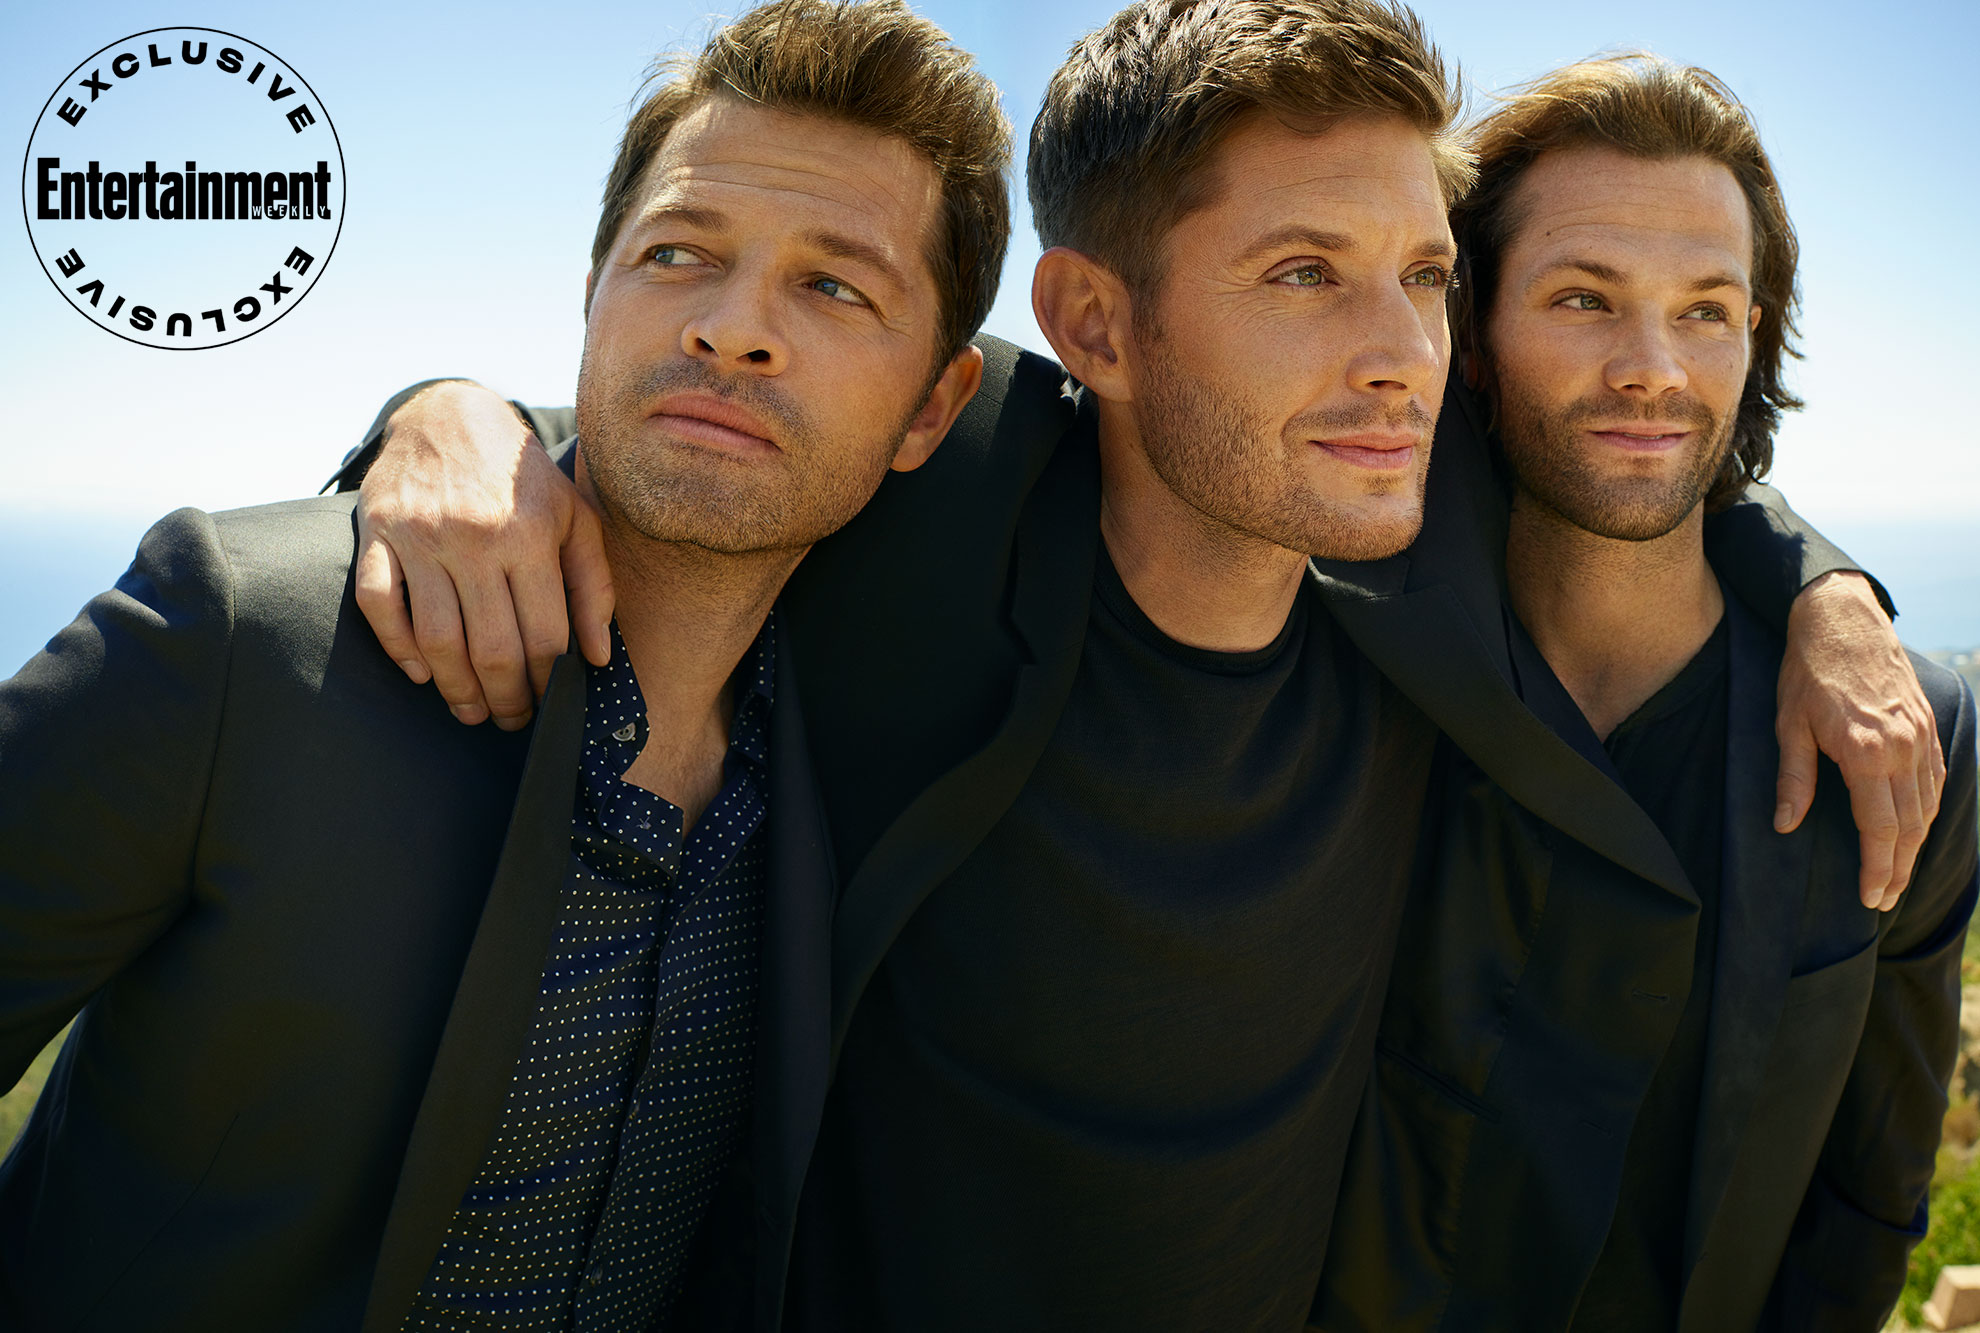 Supernatural stars celebrate 15 years in exclusive EW portraits